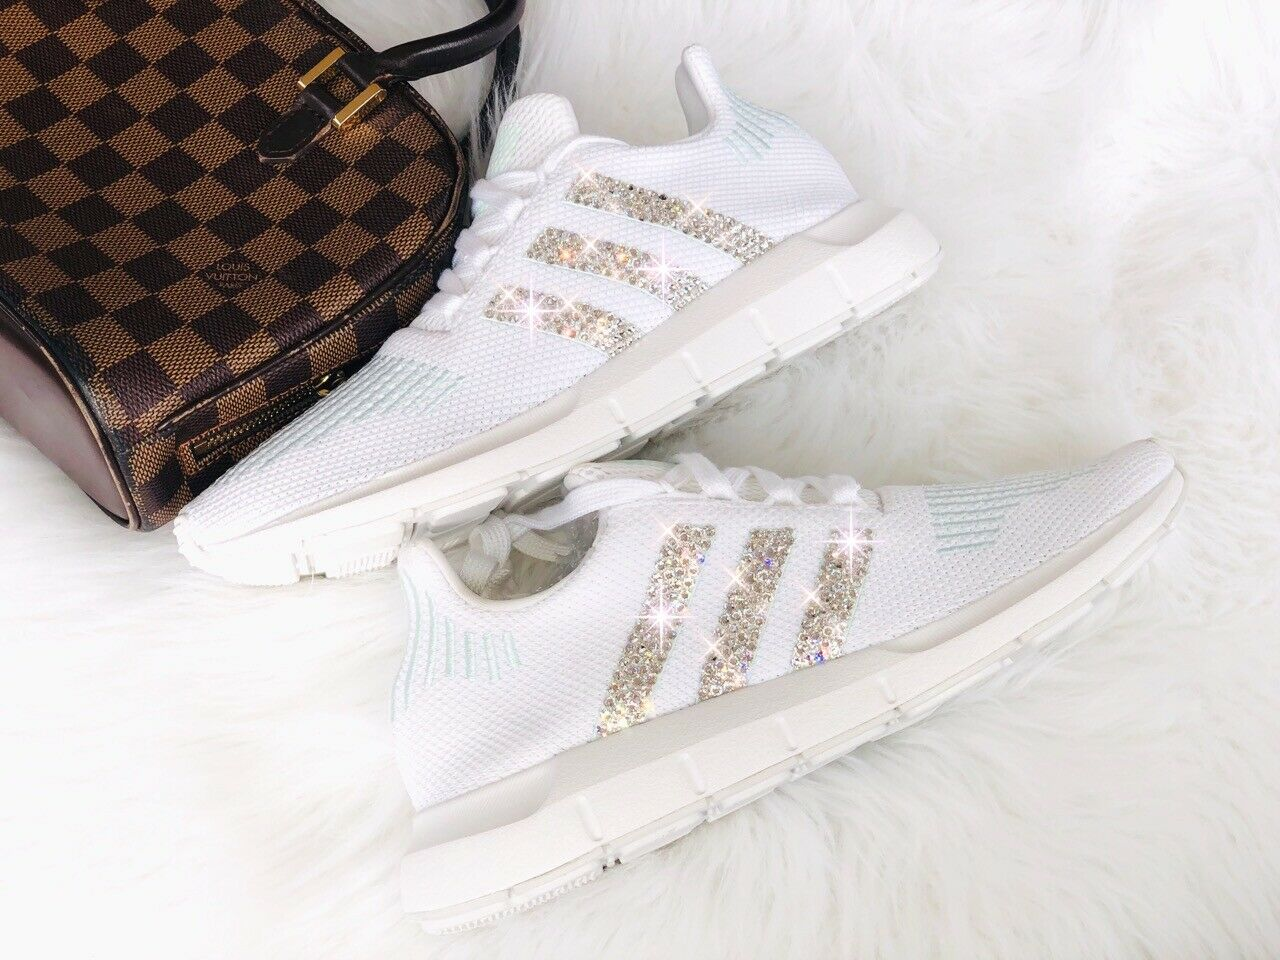 fee024e87 Adidas Originals Swift Run white mint mit Swarovski Swarovski Swarovski  Elements Luxus Sneaker NMD c37d80